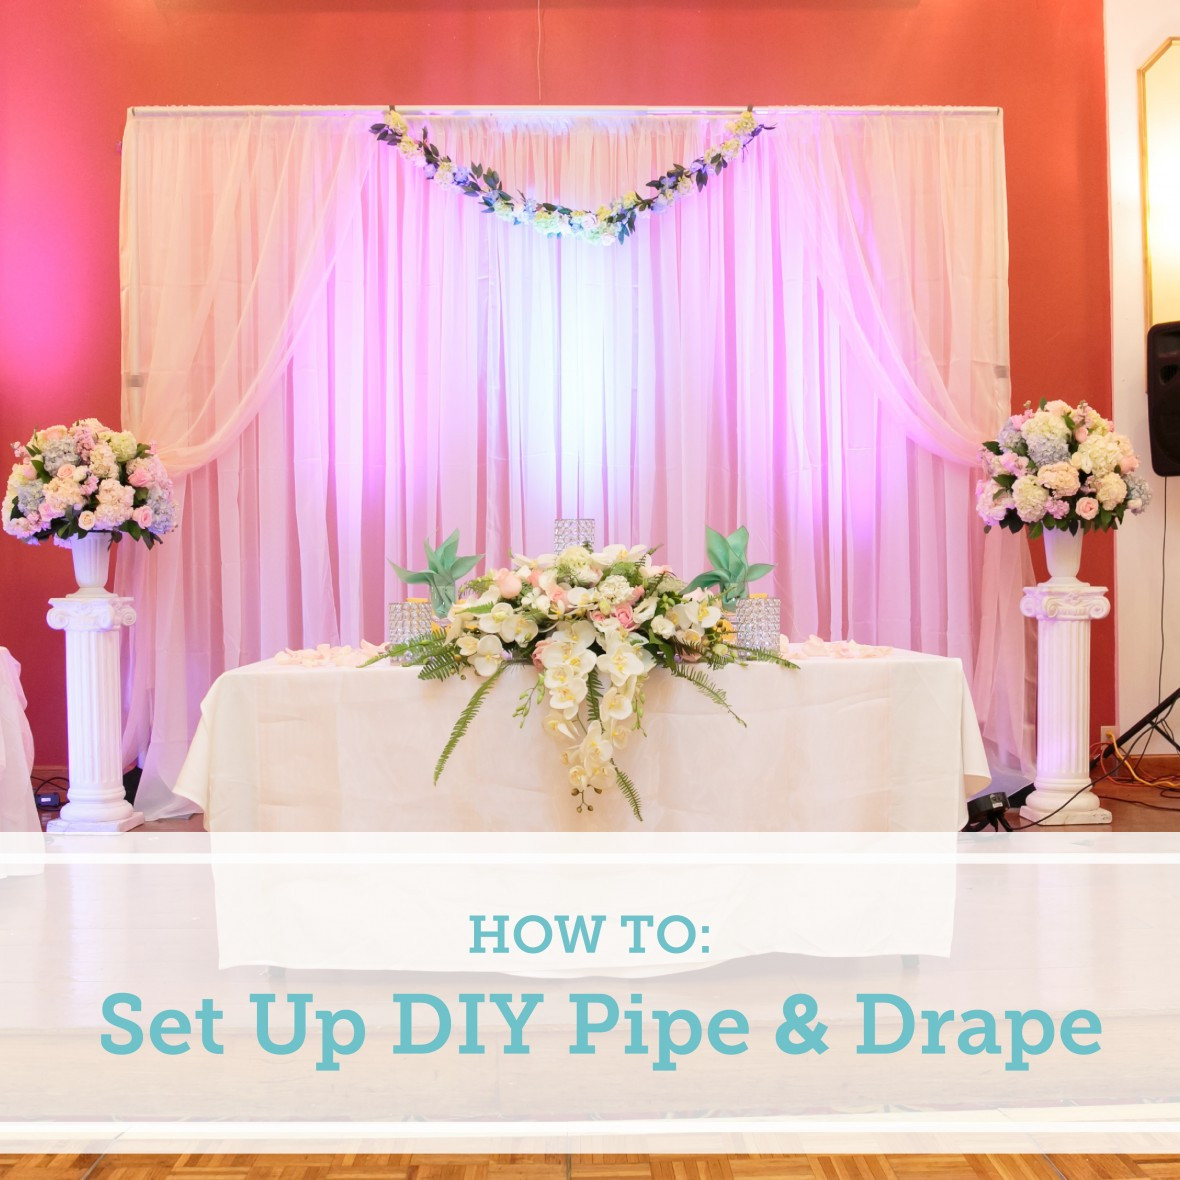 Best ideas about Wedding Backdrop DIY . Save or Pin How To Set Up a DIY Wedding Backdrop Now.